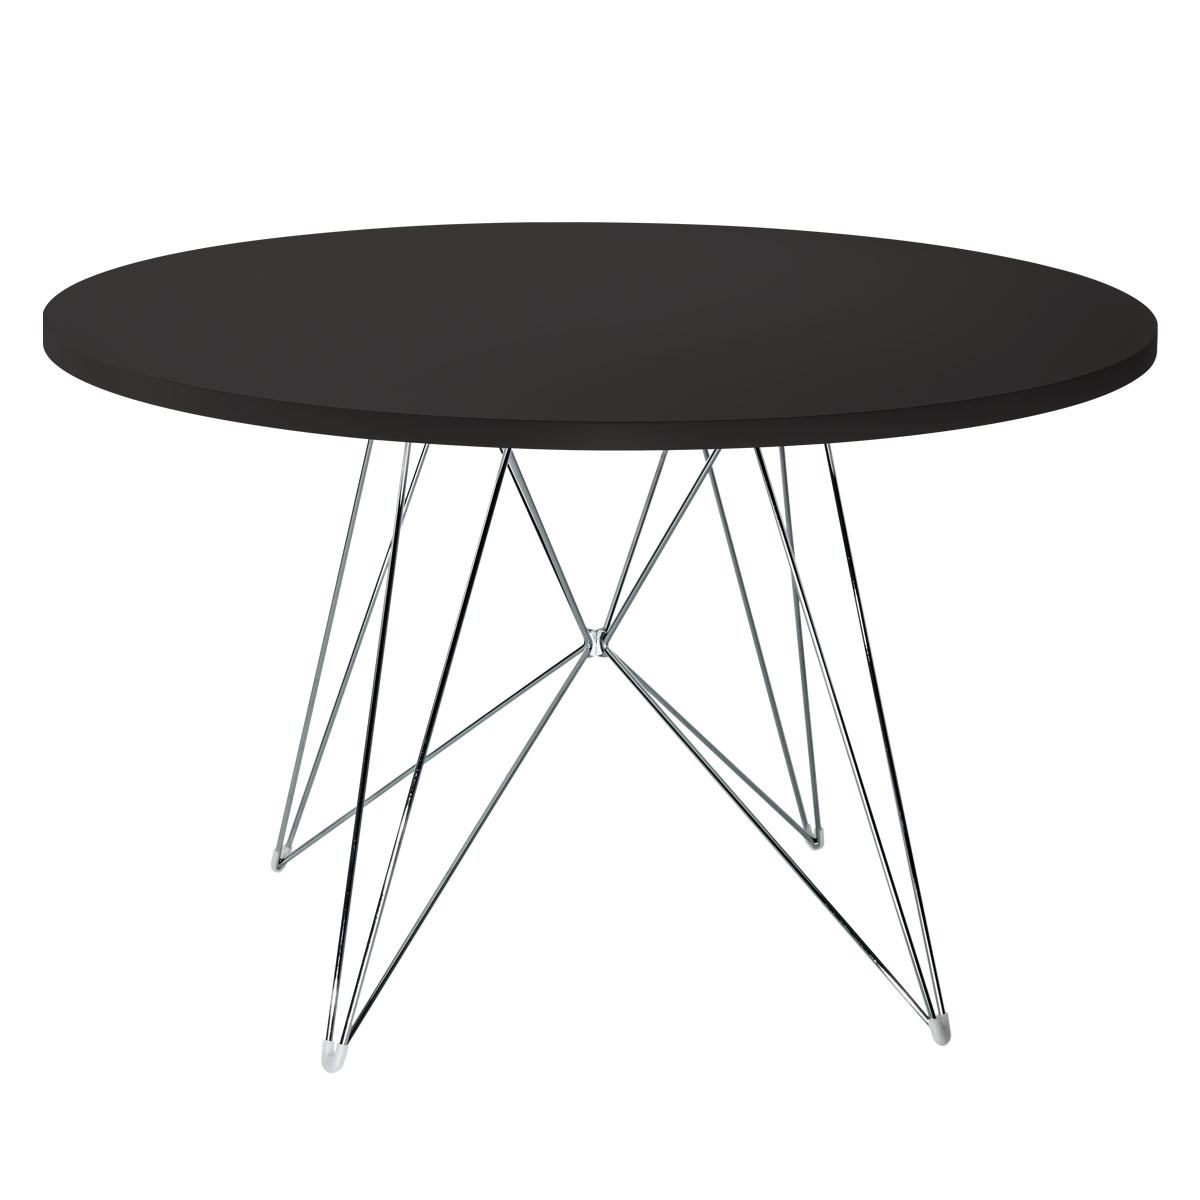 ... Magis Tavolo XZ3 Round Table   Chrome, White, Black, Copper, ...